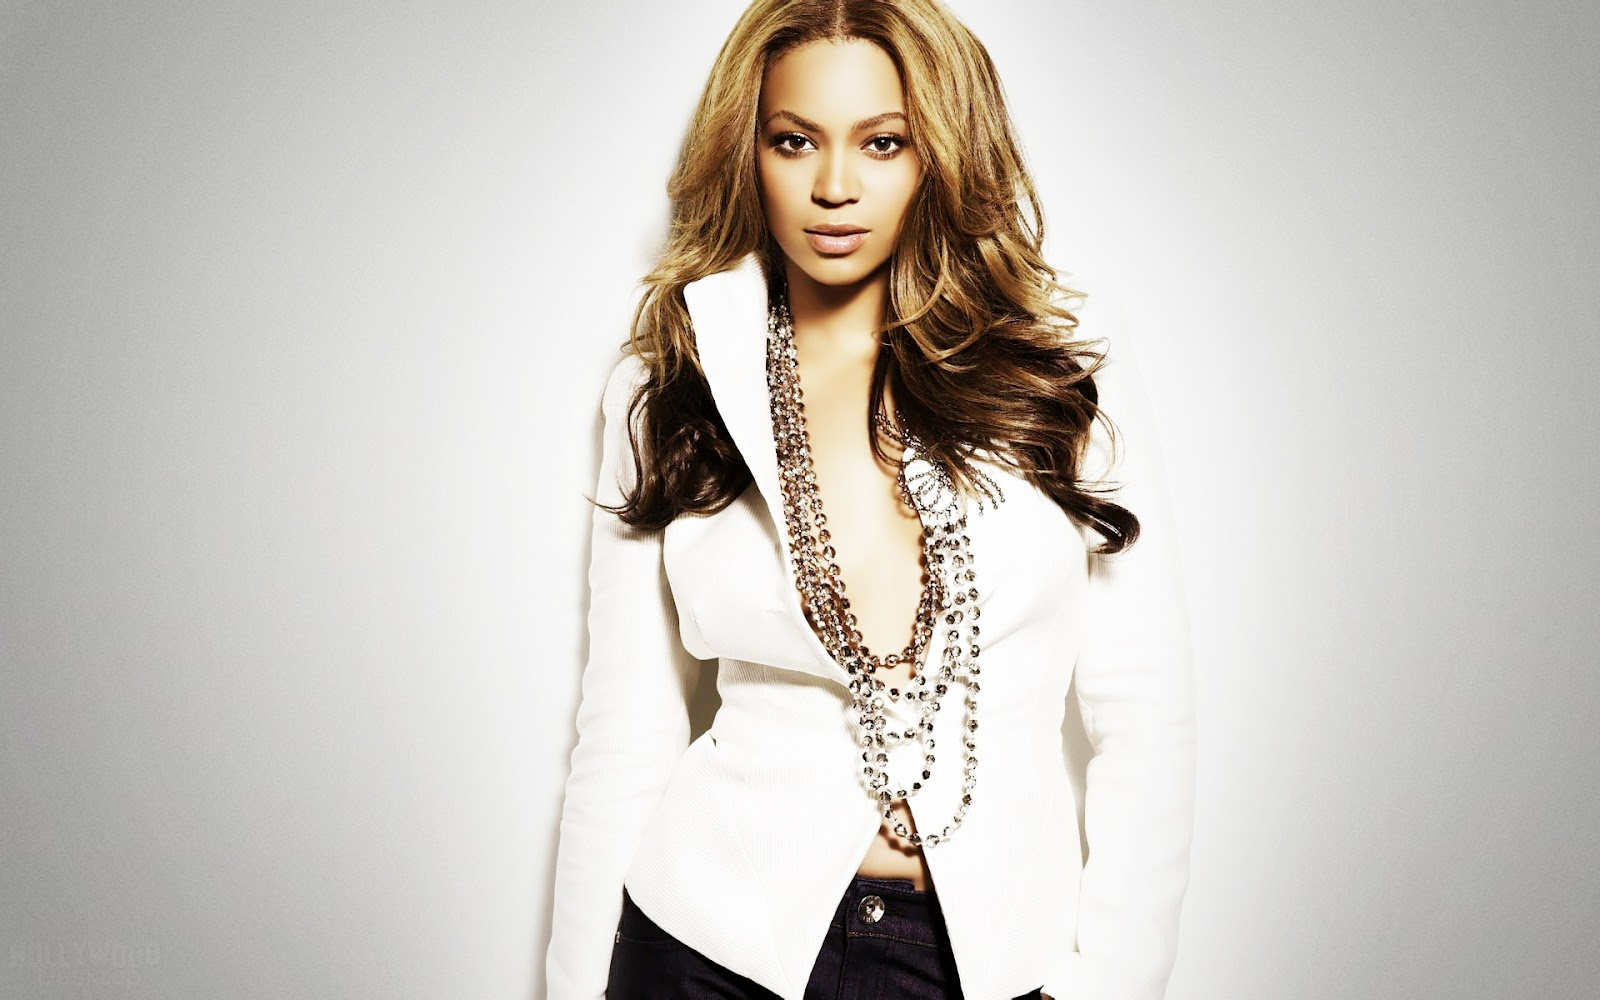 beyonce wallpapers hd beyonce wallpapers